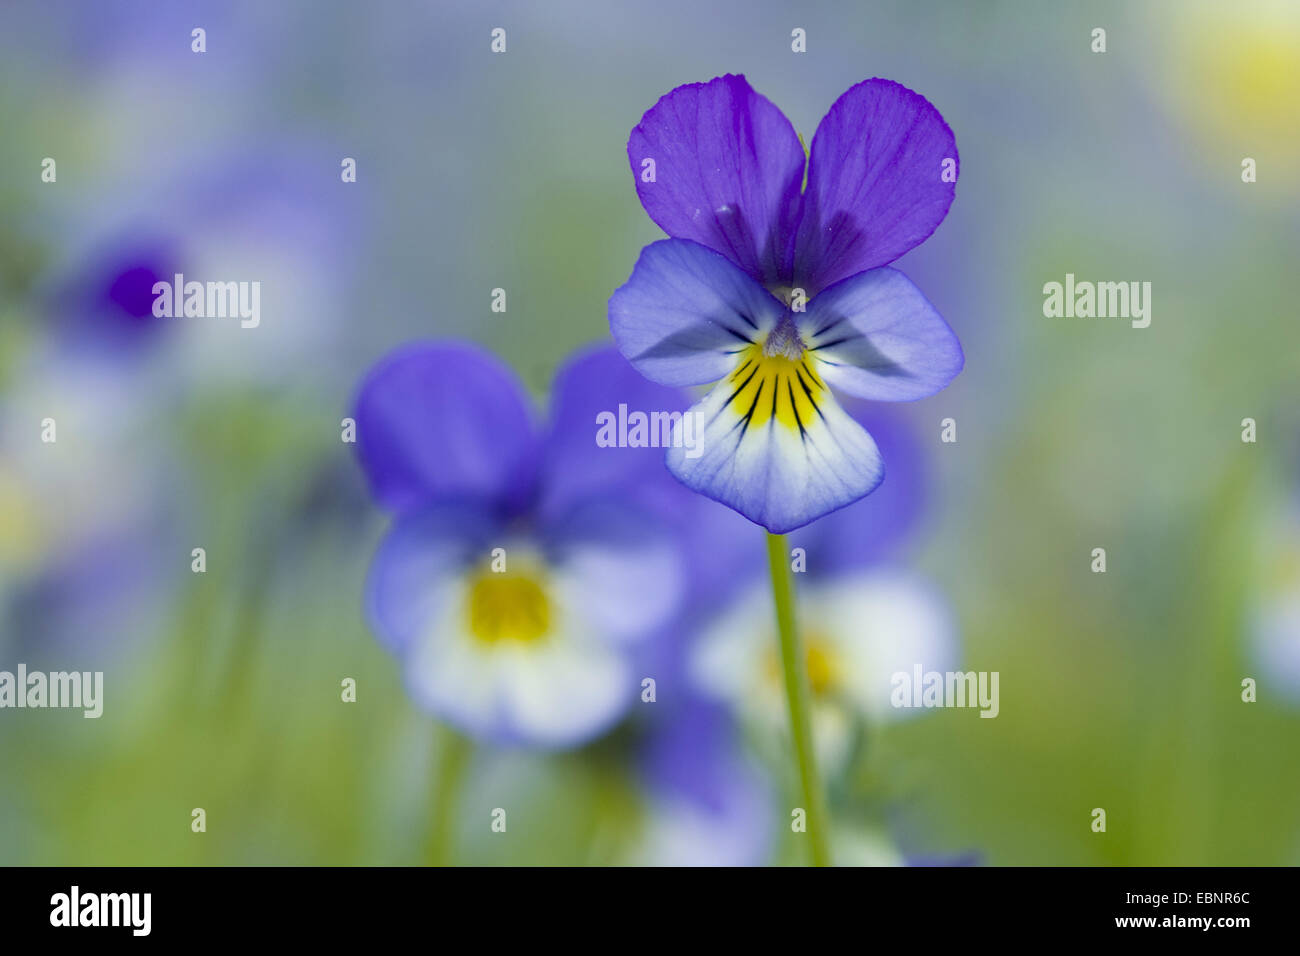 heart's ease, heartsease, wild pansy, three colored violet (Viola tricolor), flowers, Germany - Stock Image